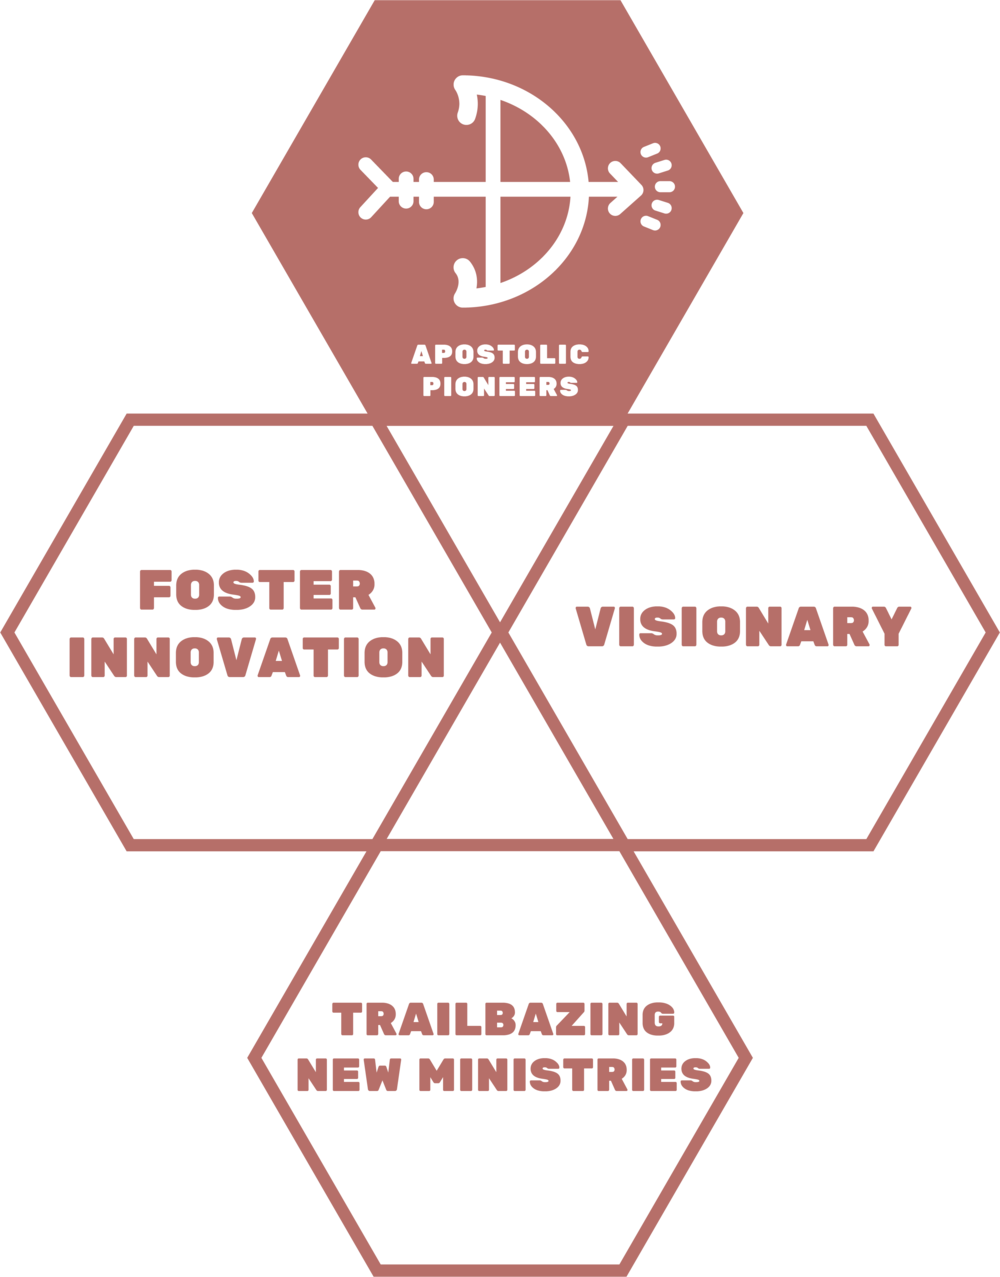 APOSTOLIC PIONEERS - There are endless opportunities to contribute to the growth of our base. Both staff and students are encouraged to pursue the dreams God has placed within them. Our vision is to create new ministries all over the world. We love to be the platform that lifts and launches visions for the glory of God.